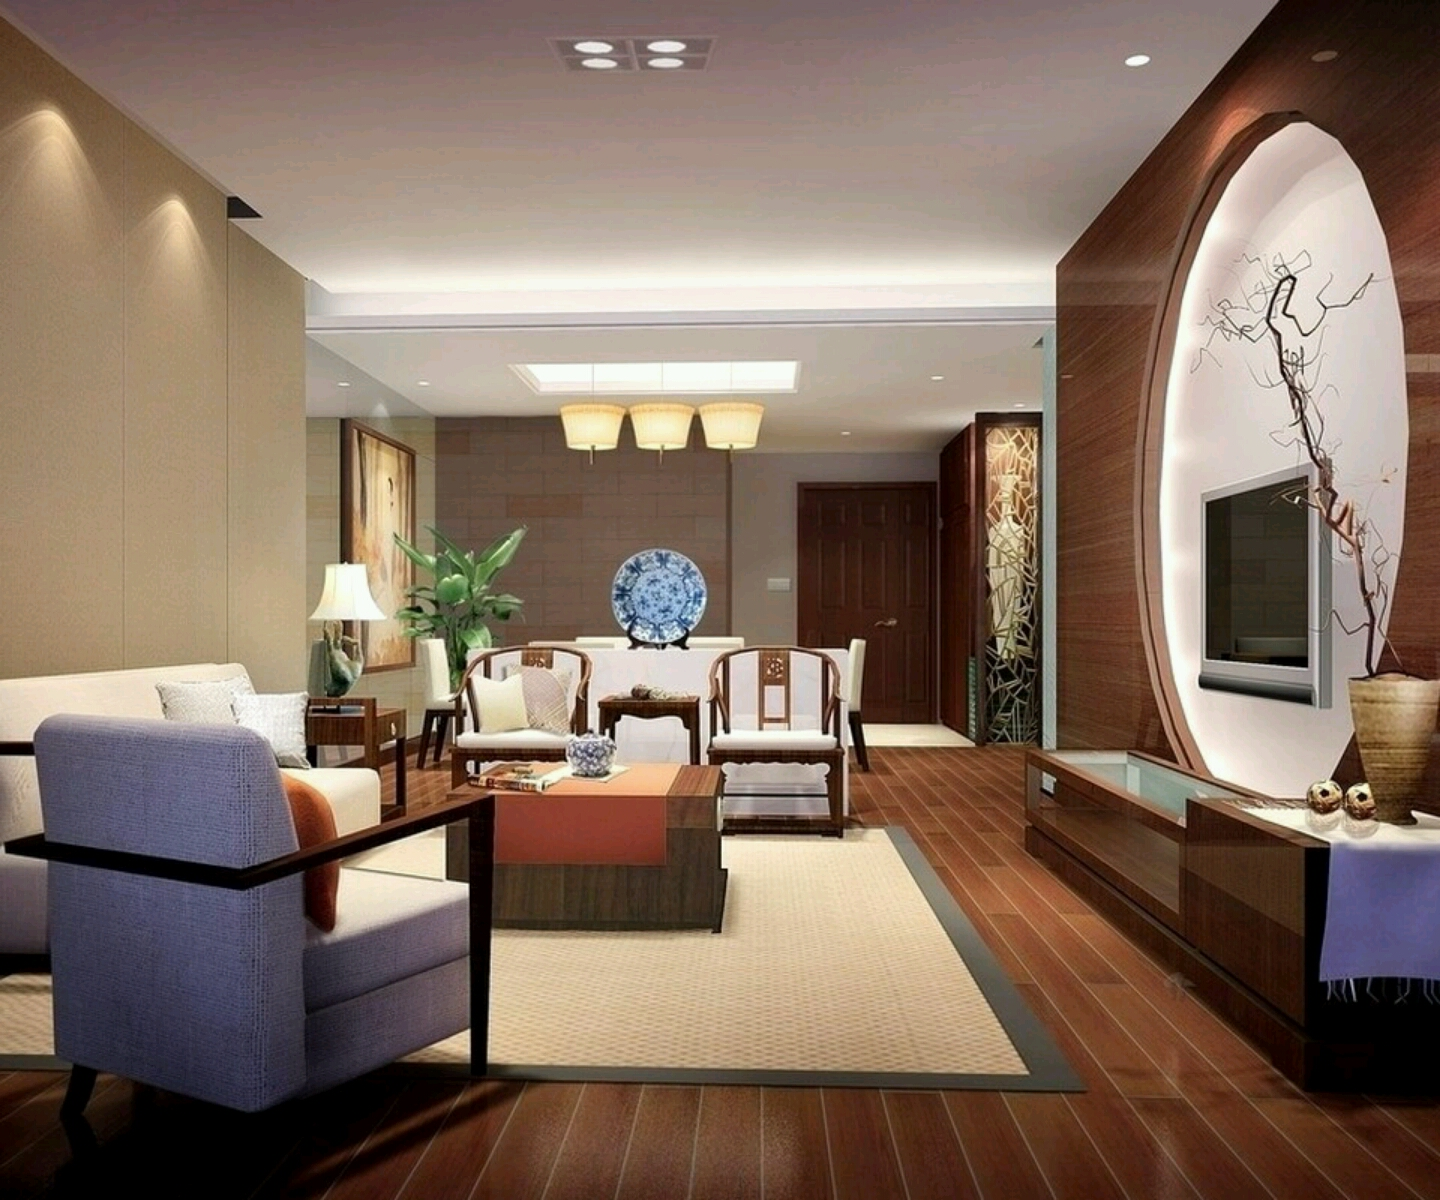 Luxury homes interior decoration living room designs ideas for Room interior design ideas